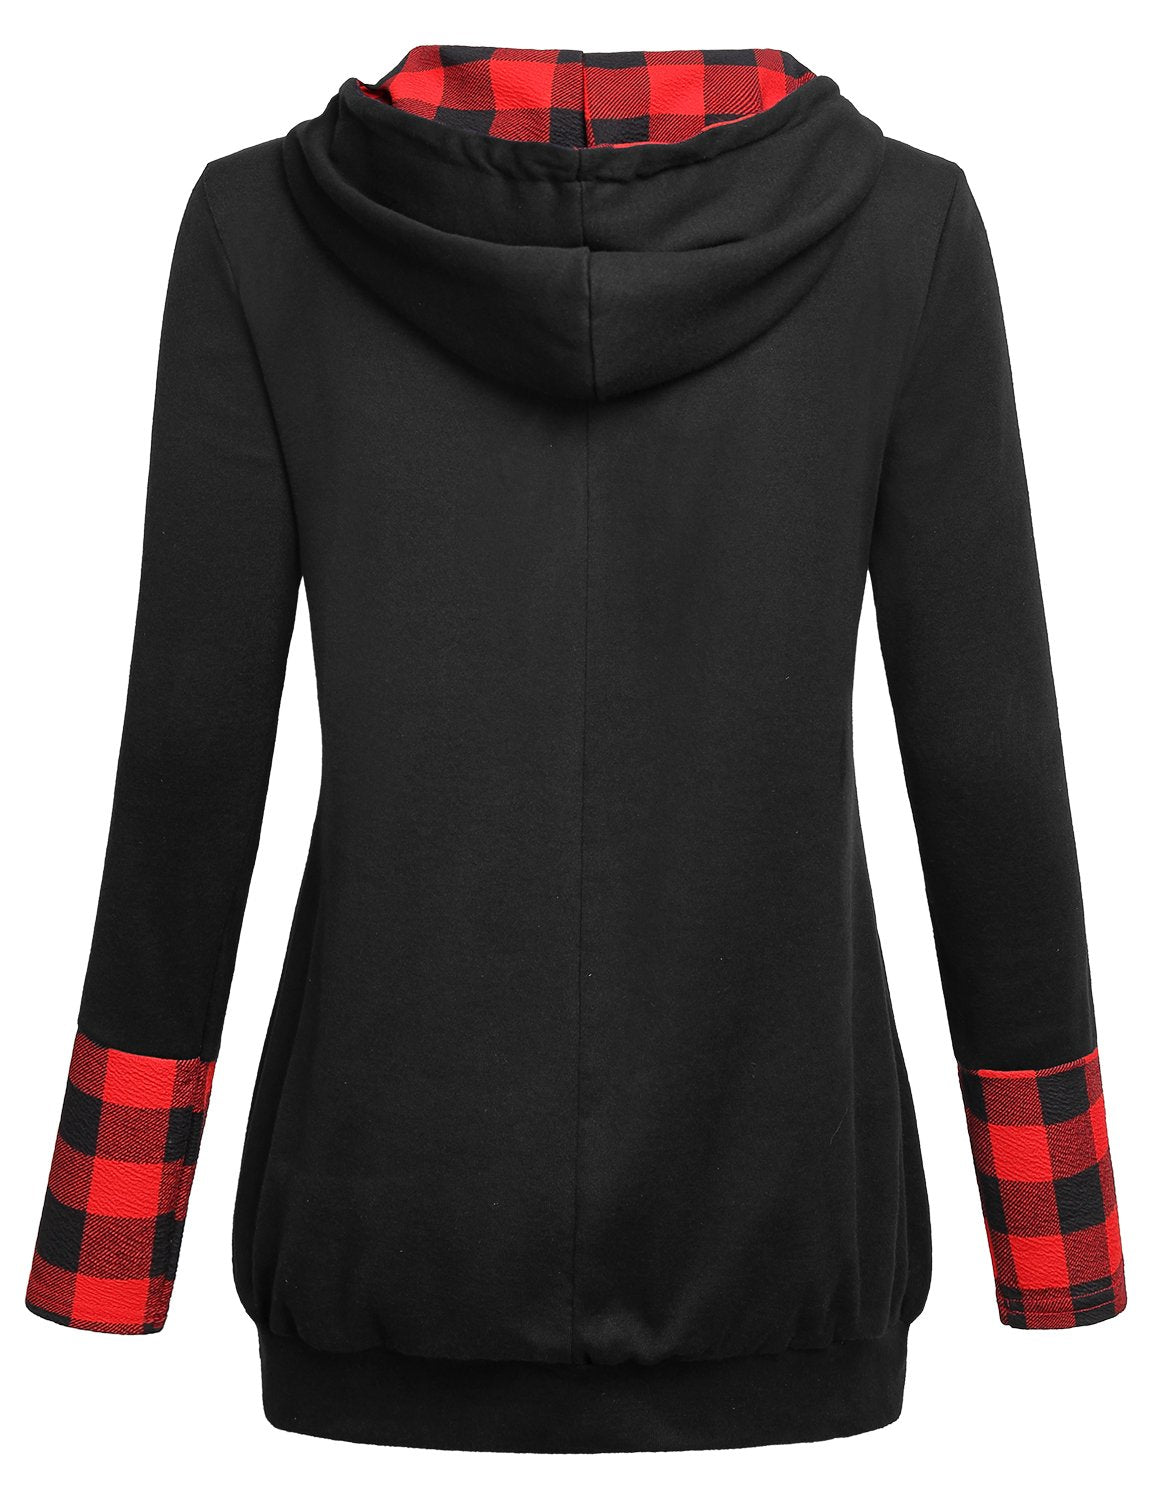 Cestyle Tunic Sweatshirts for Women Hooded,Juniors Long Sleeve V Neck Red Plaid Hoodie Casual Color Block Loose Pullover Shirts with Kangaroo Pocket Black Medium - wiihuu